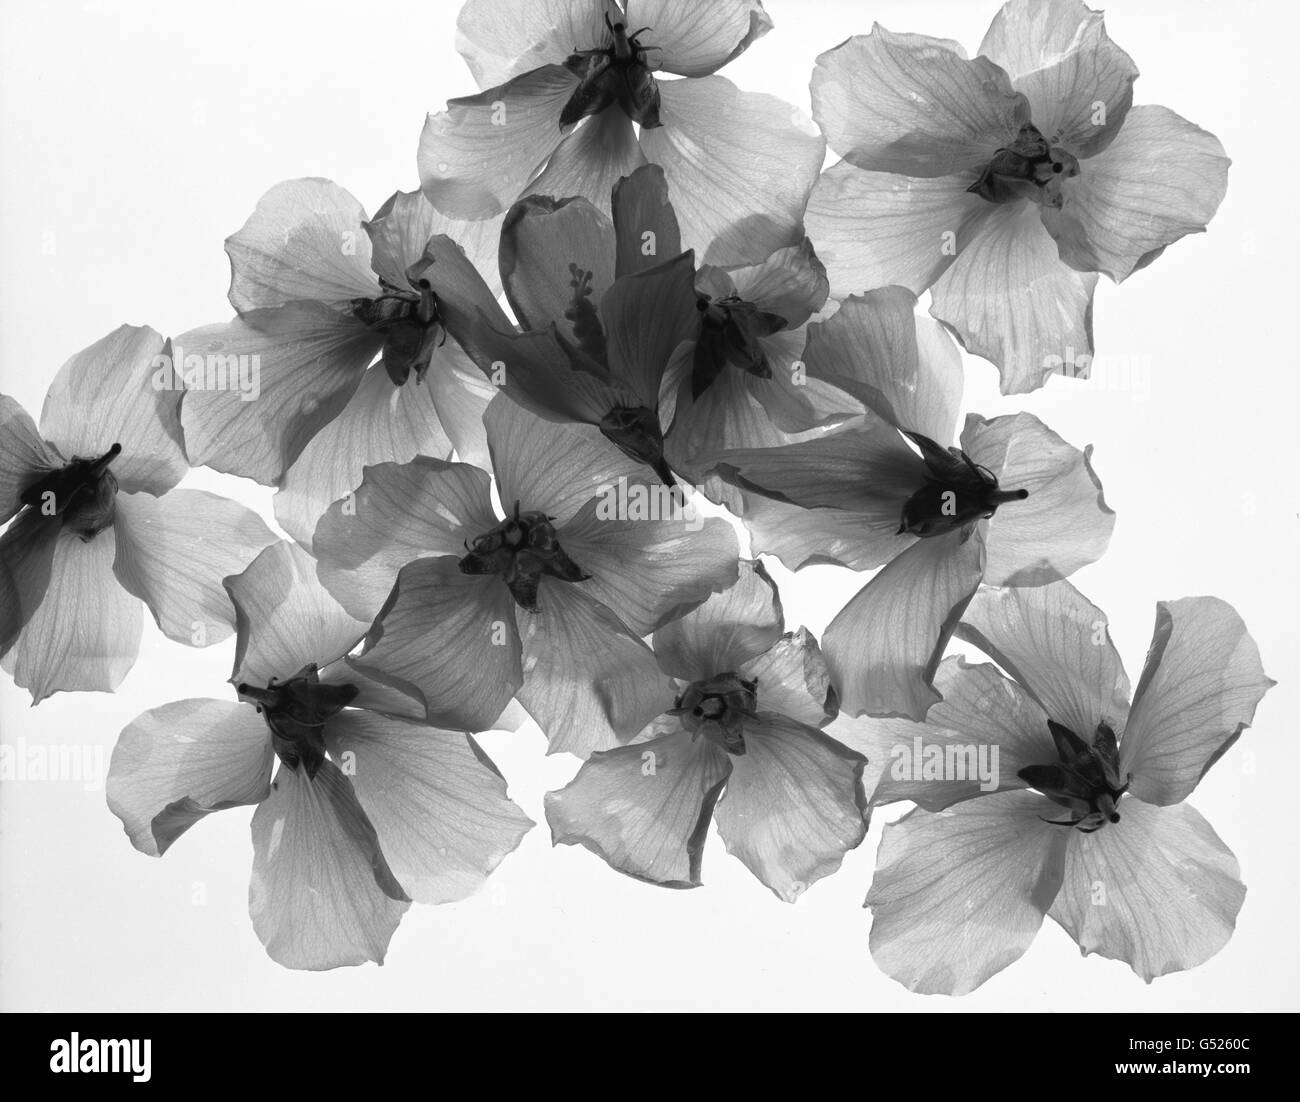 Morning Glory flowers with light passing through them on a translucent background - Stock Image